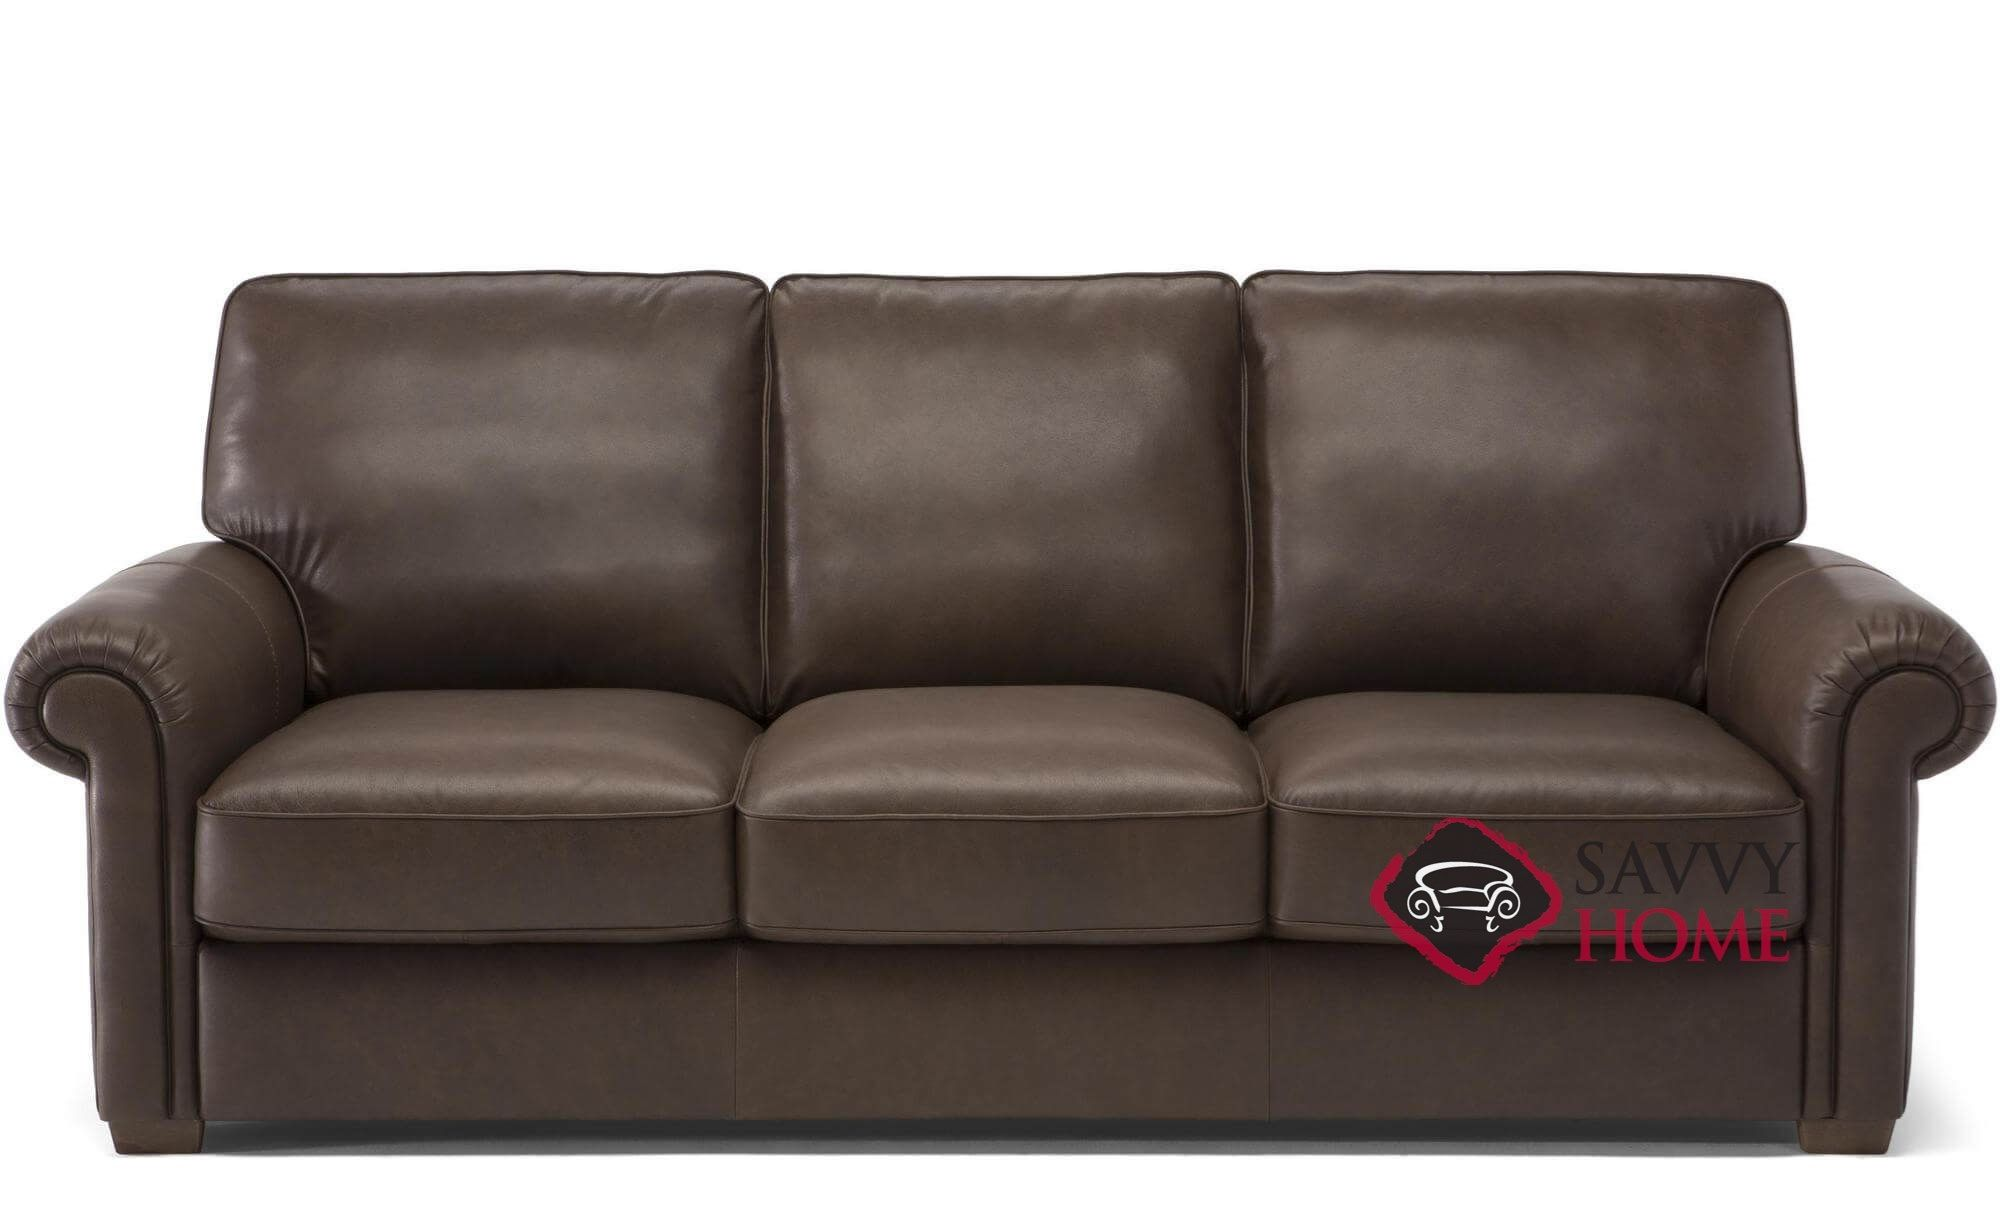 Natuzzi Leather Sofa Cushion Replacement In 2020 Cushions On